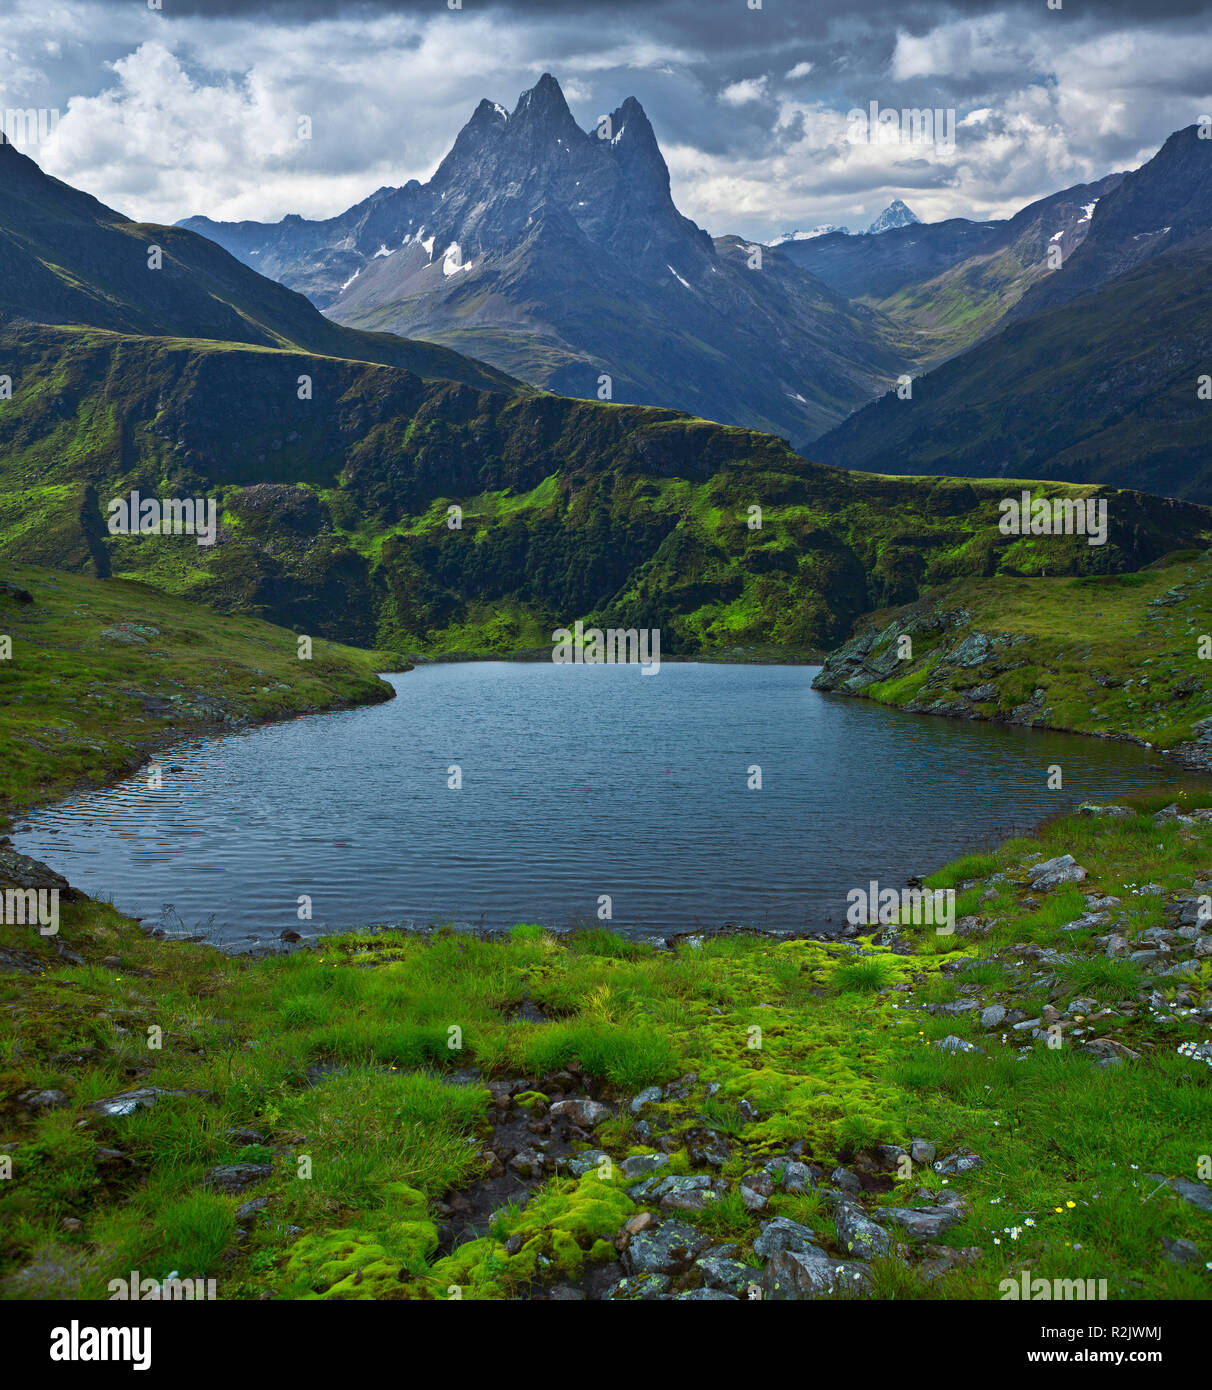 Fantasy Landscape, Mountainous Landscape with Lake (M) - Stock Image